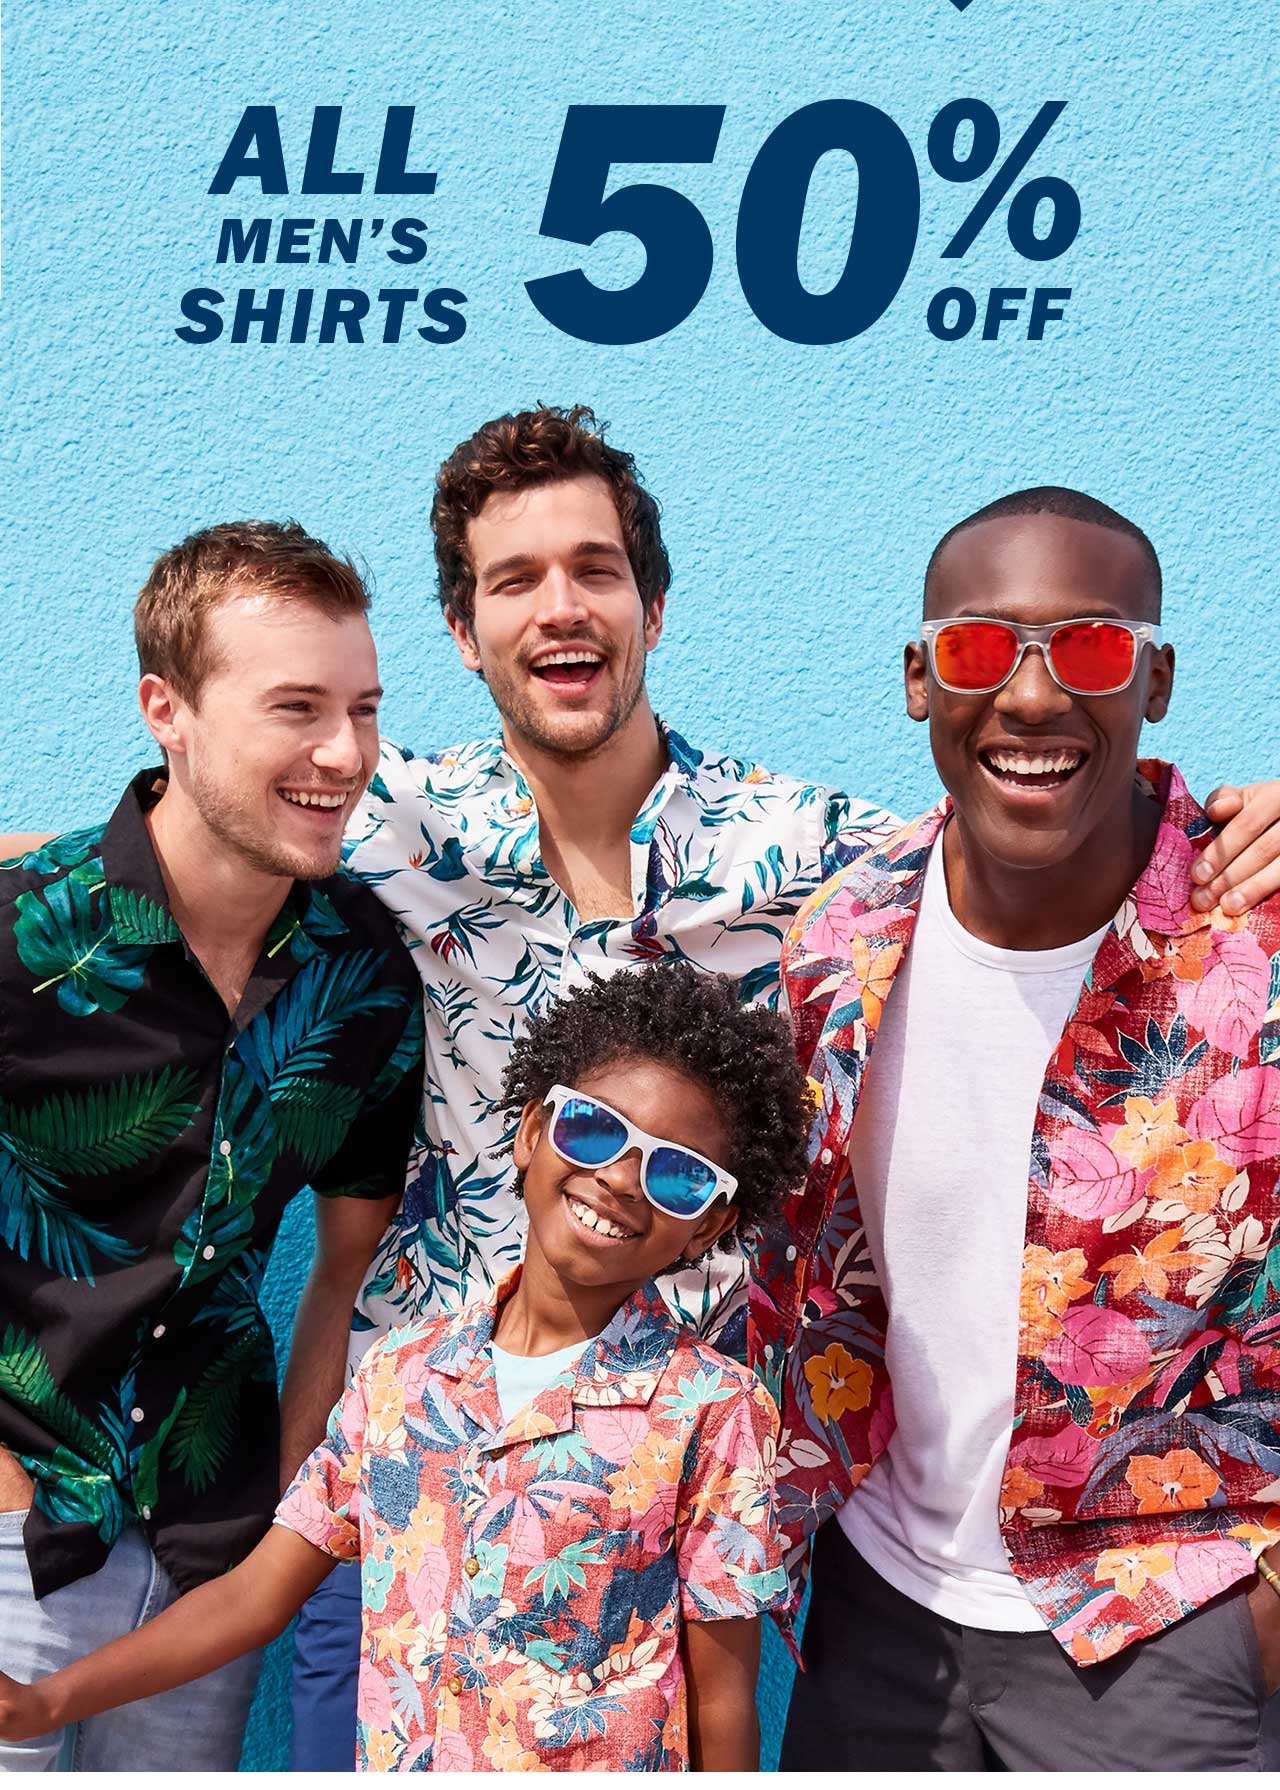 ALL MEN'S SHIRTS 50% OFF